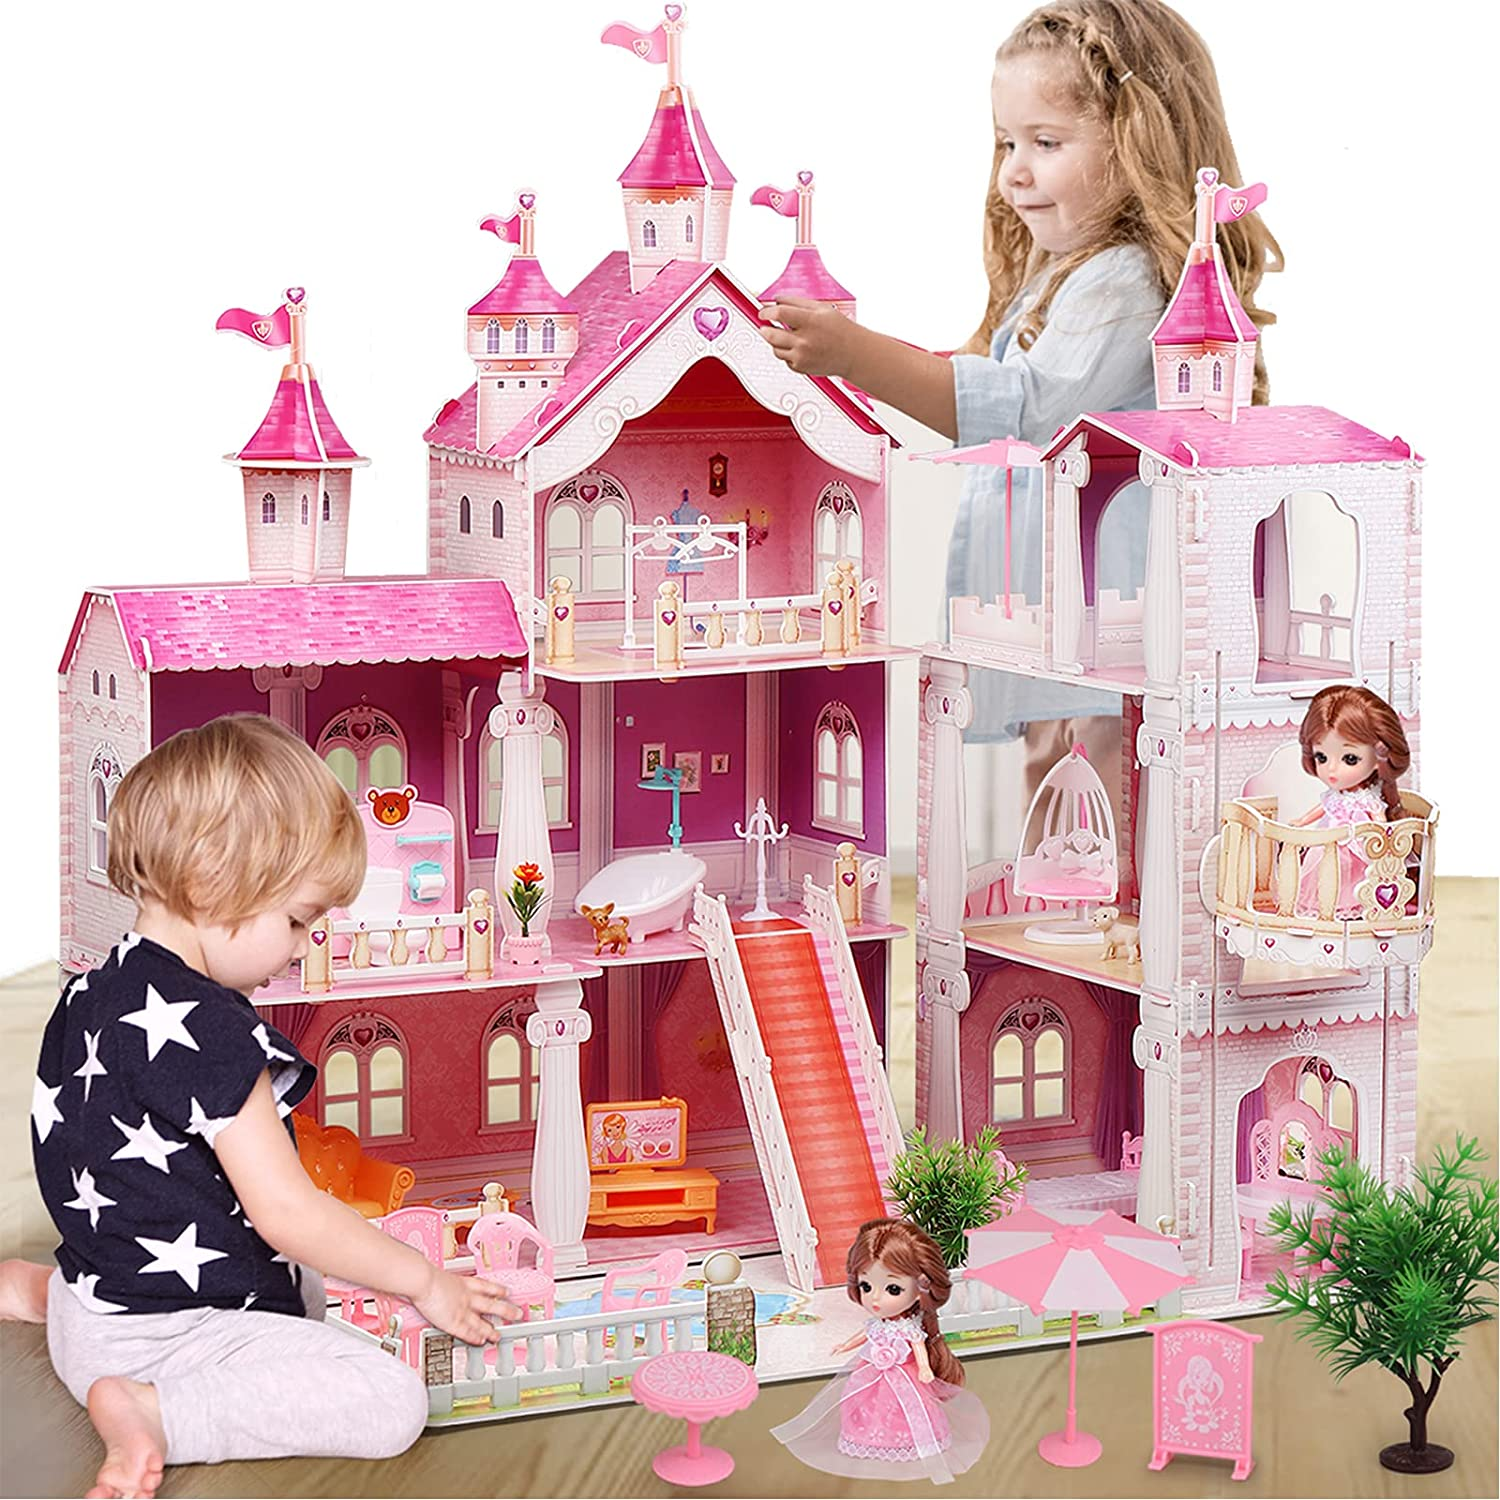 Huge Dollhouse with Light, 3 Floors Doll House with 1 Doll, 8 Rooms and Furniture Accessories, Dreamhouse Building DIY Creative Gift for Girls Toddlers